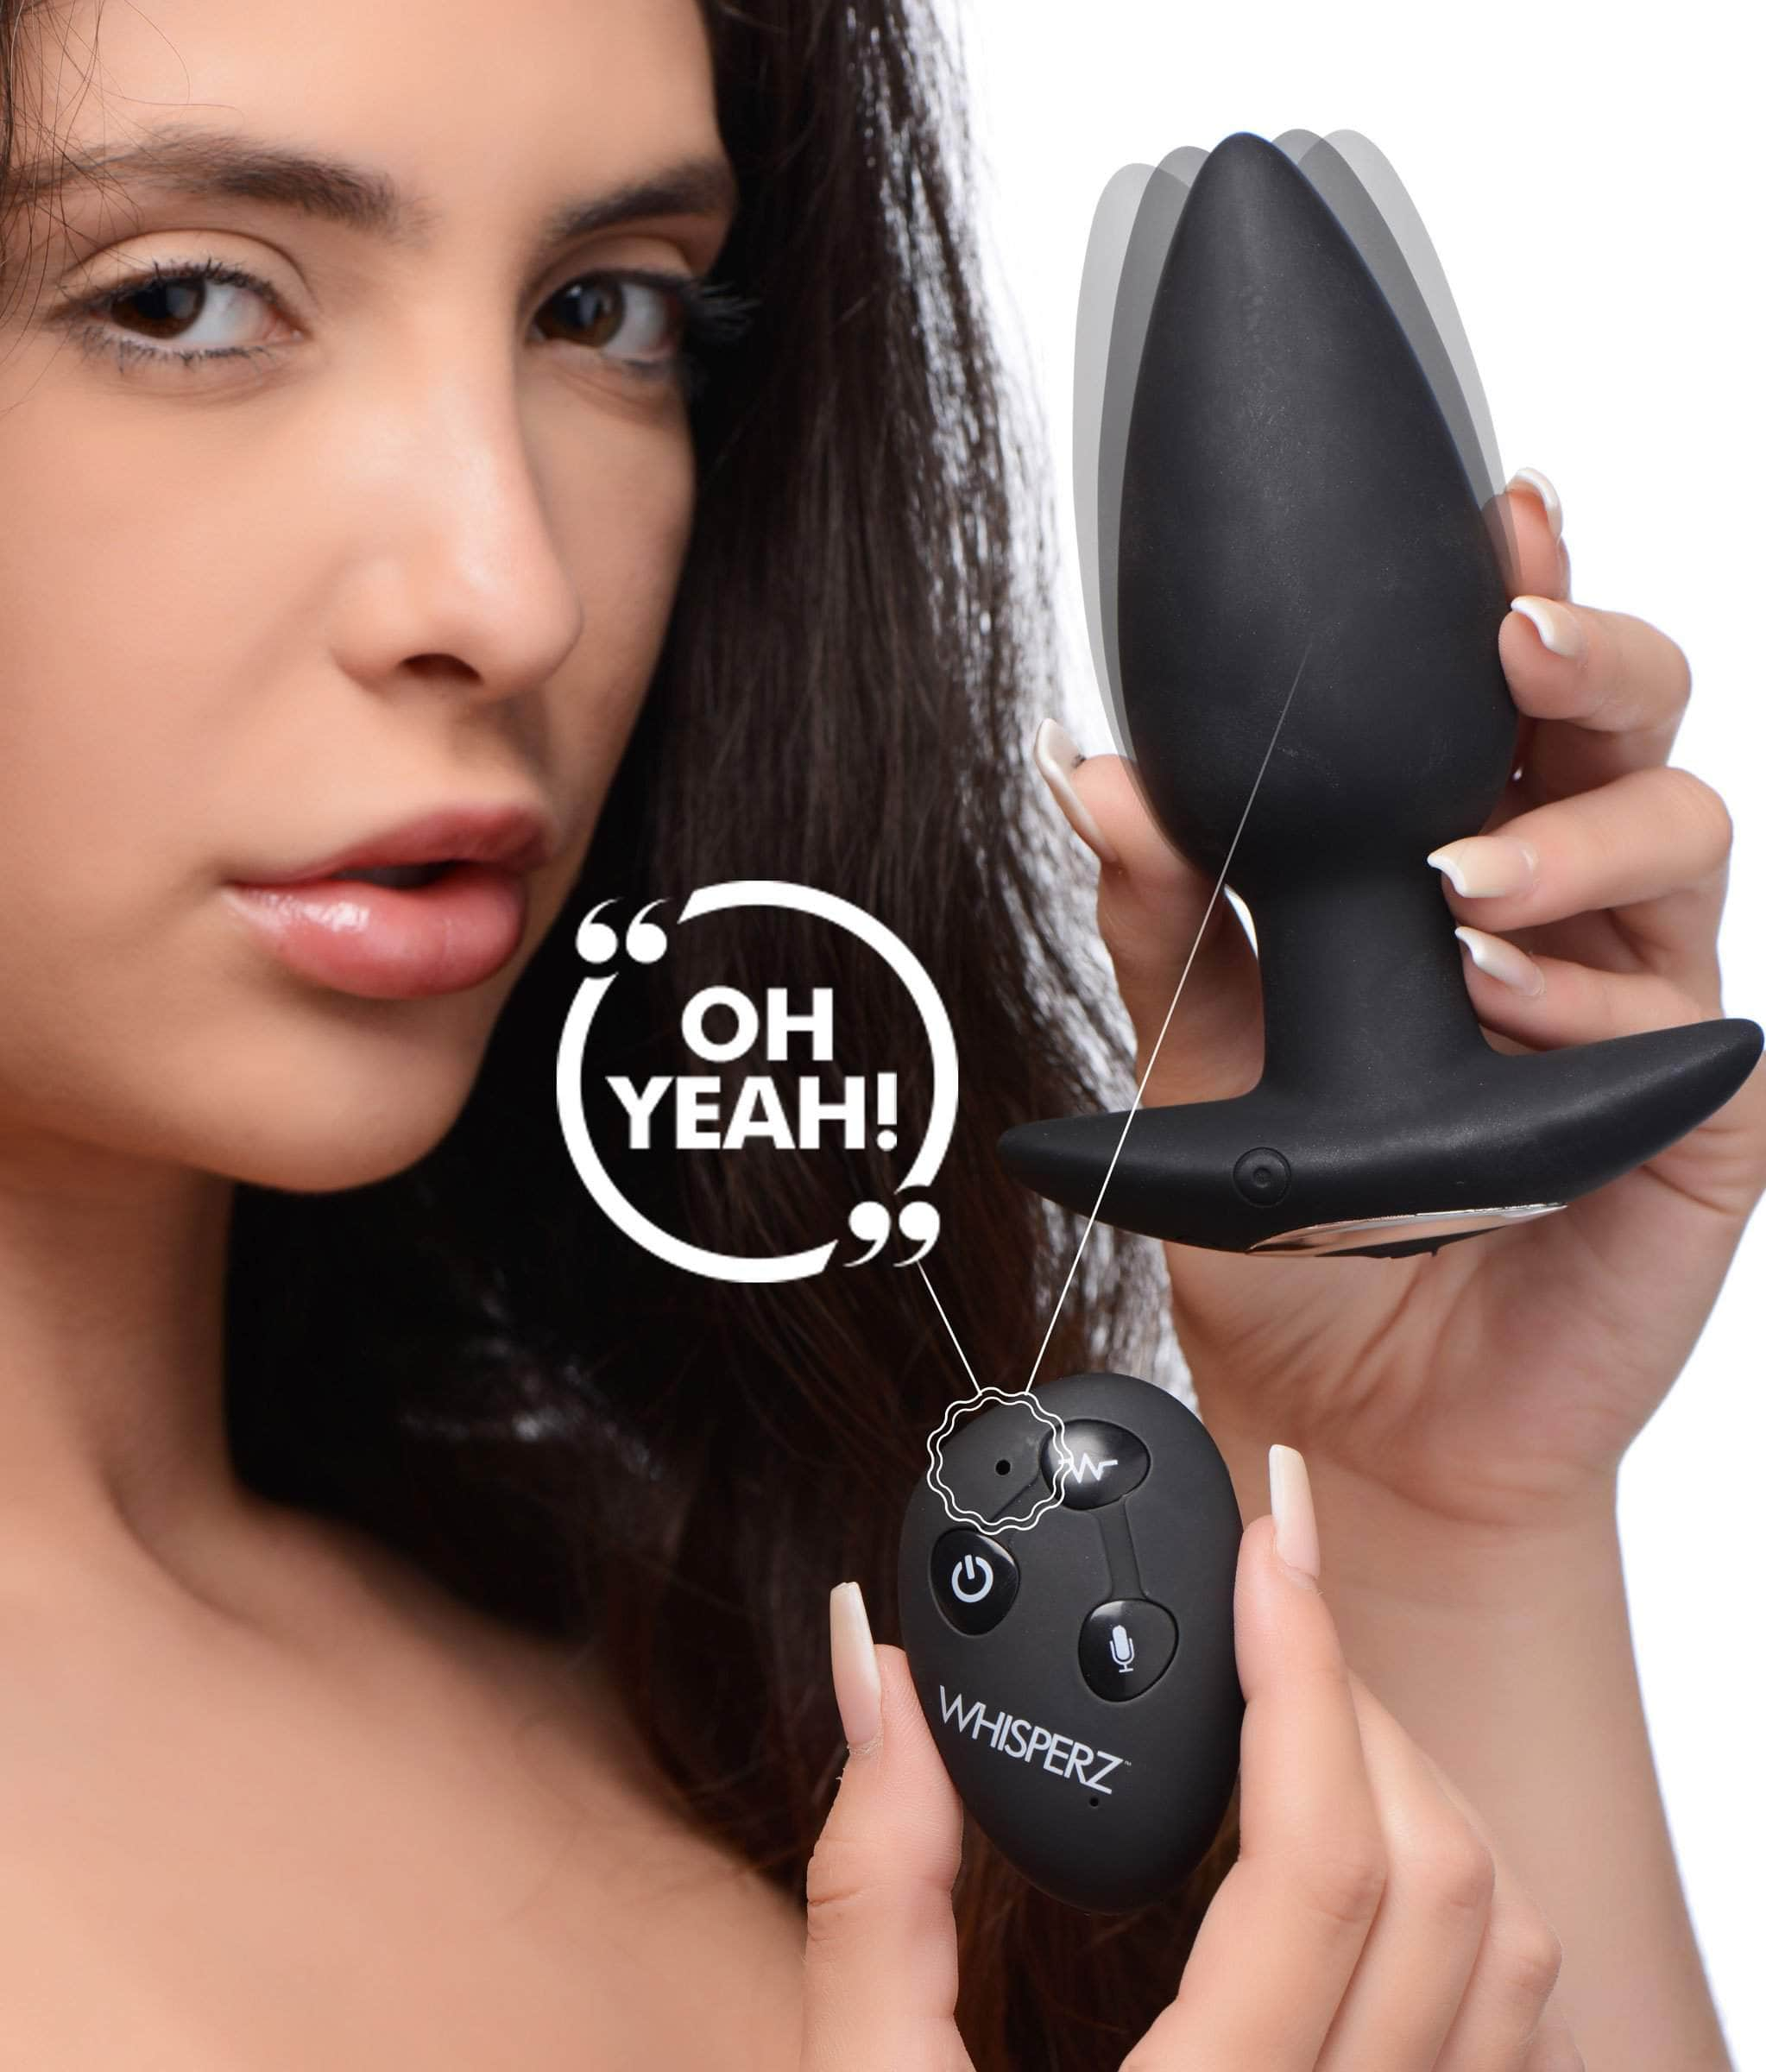 Voice Activated 10x Vibrating Butt Plug With Remote Control